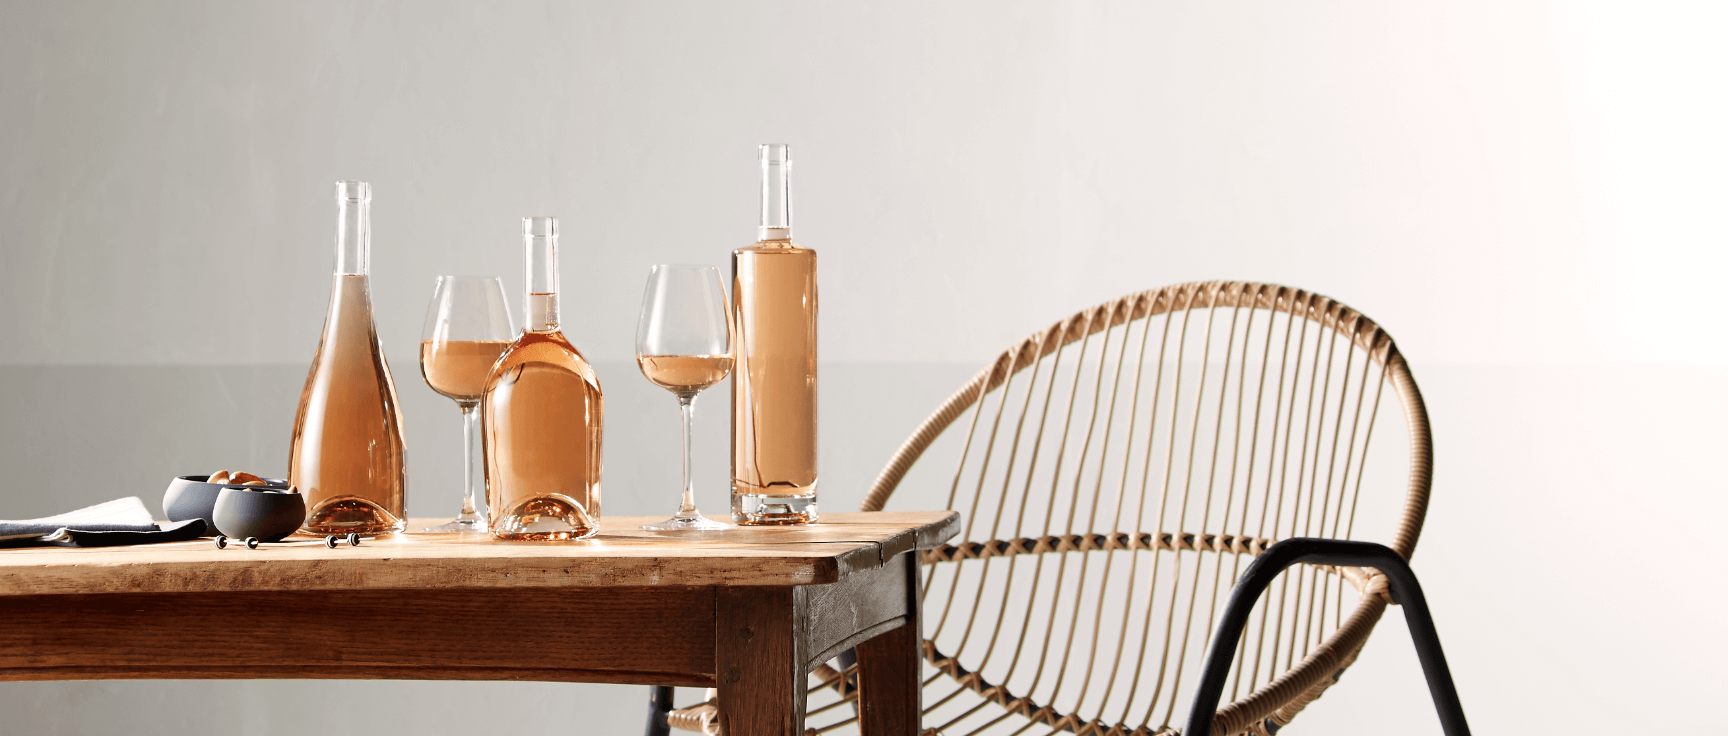 Wines - Premium glass bottle by Selective Line